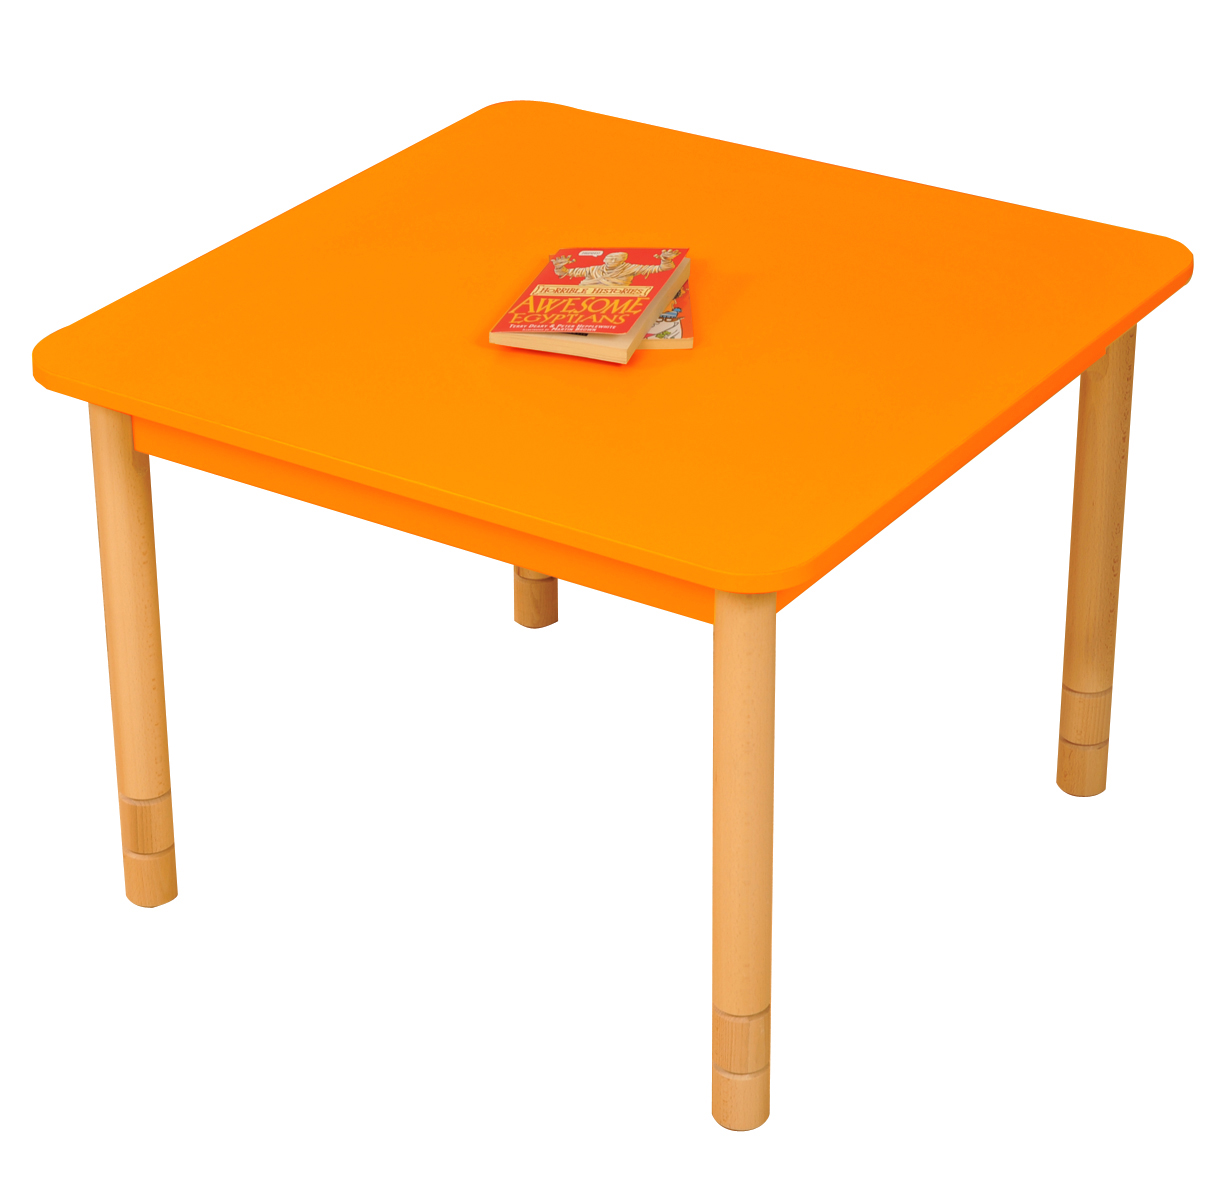 187 Height Adjustable Square Table